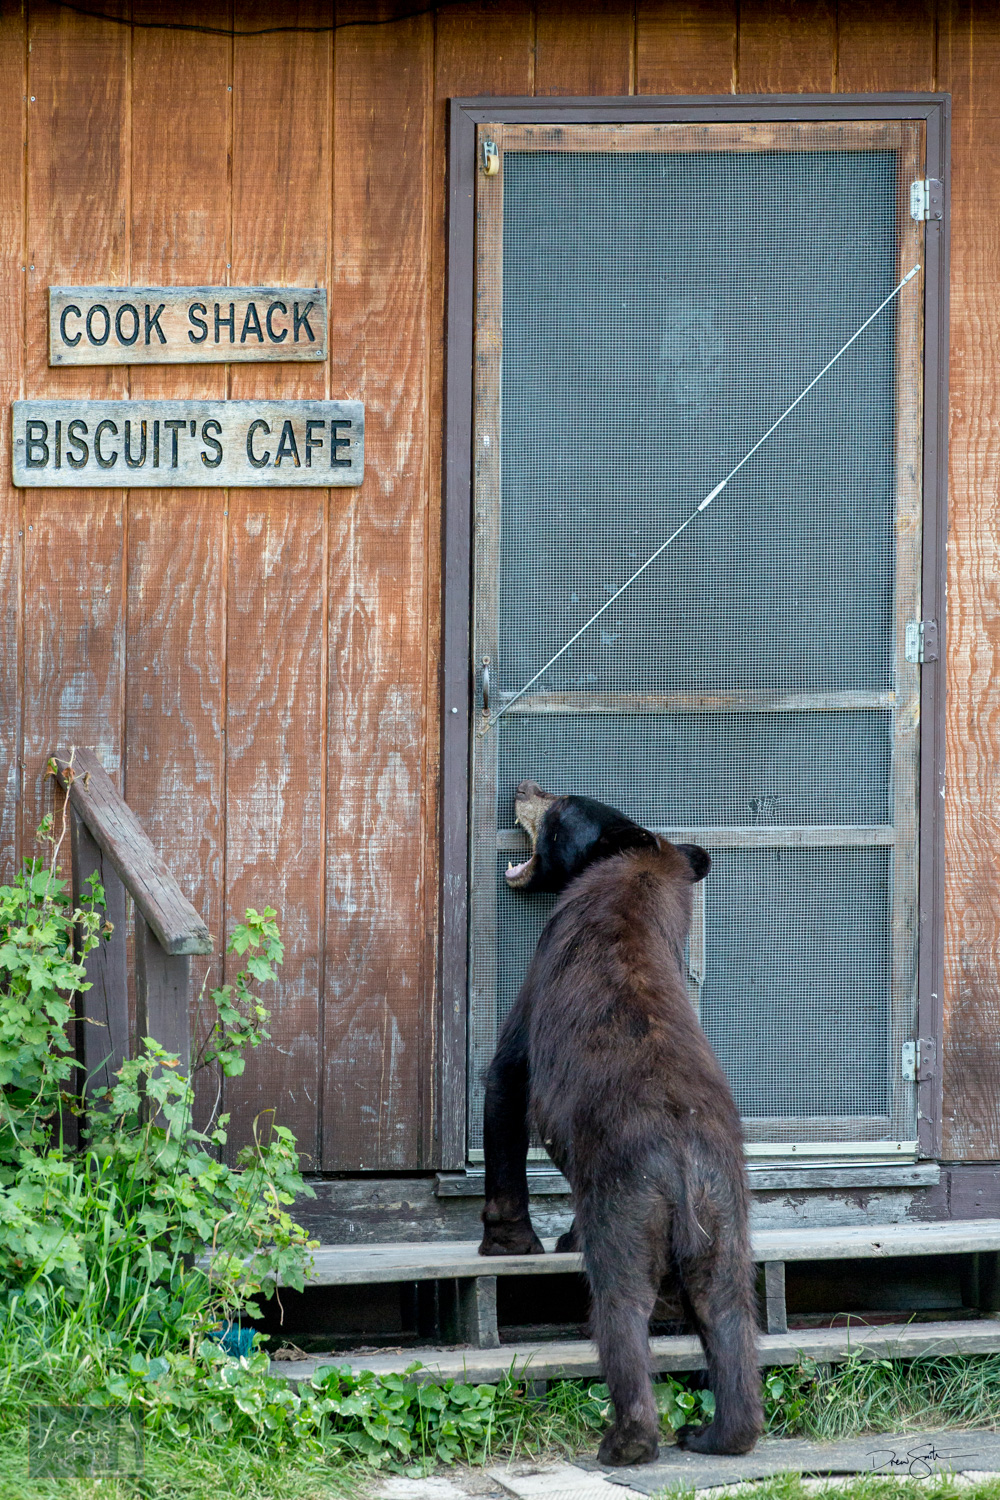 A young black bear chews on the door of the Cook Shack trying to get in.